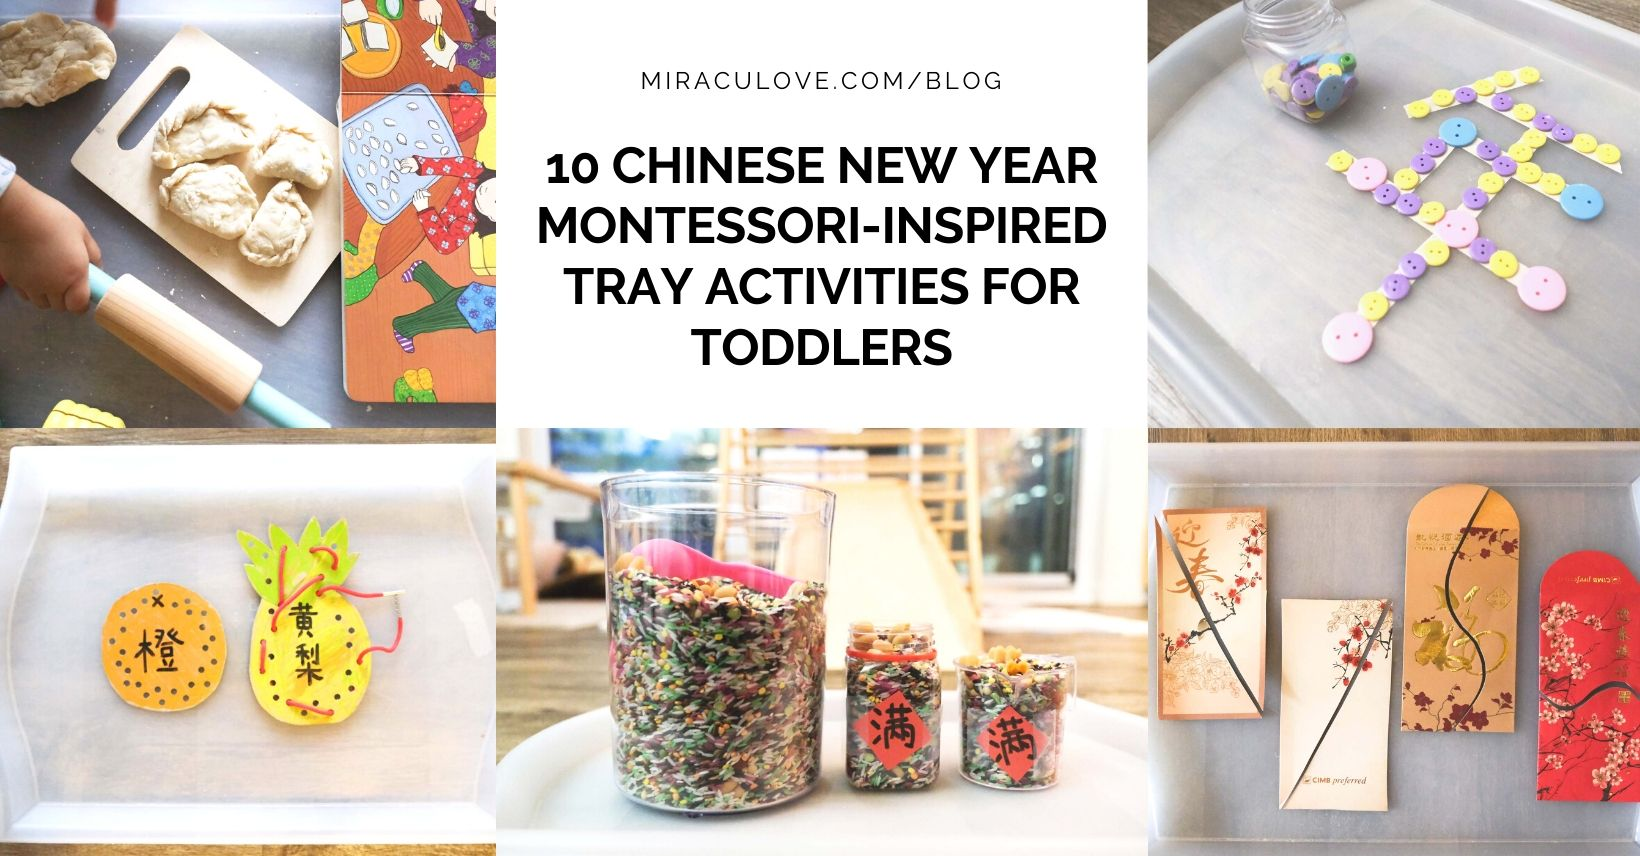 10 Chinese New Year Montessori-Inspired Tray Activities for Toddlers